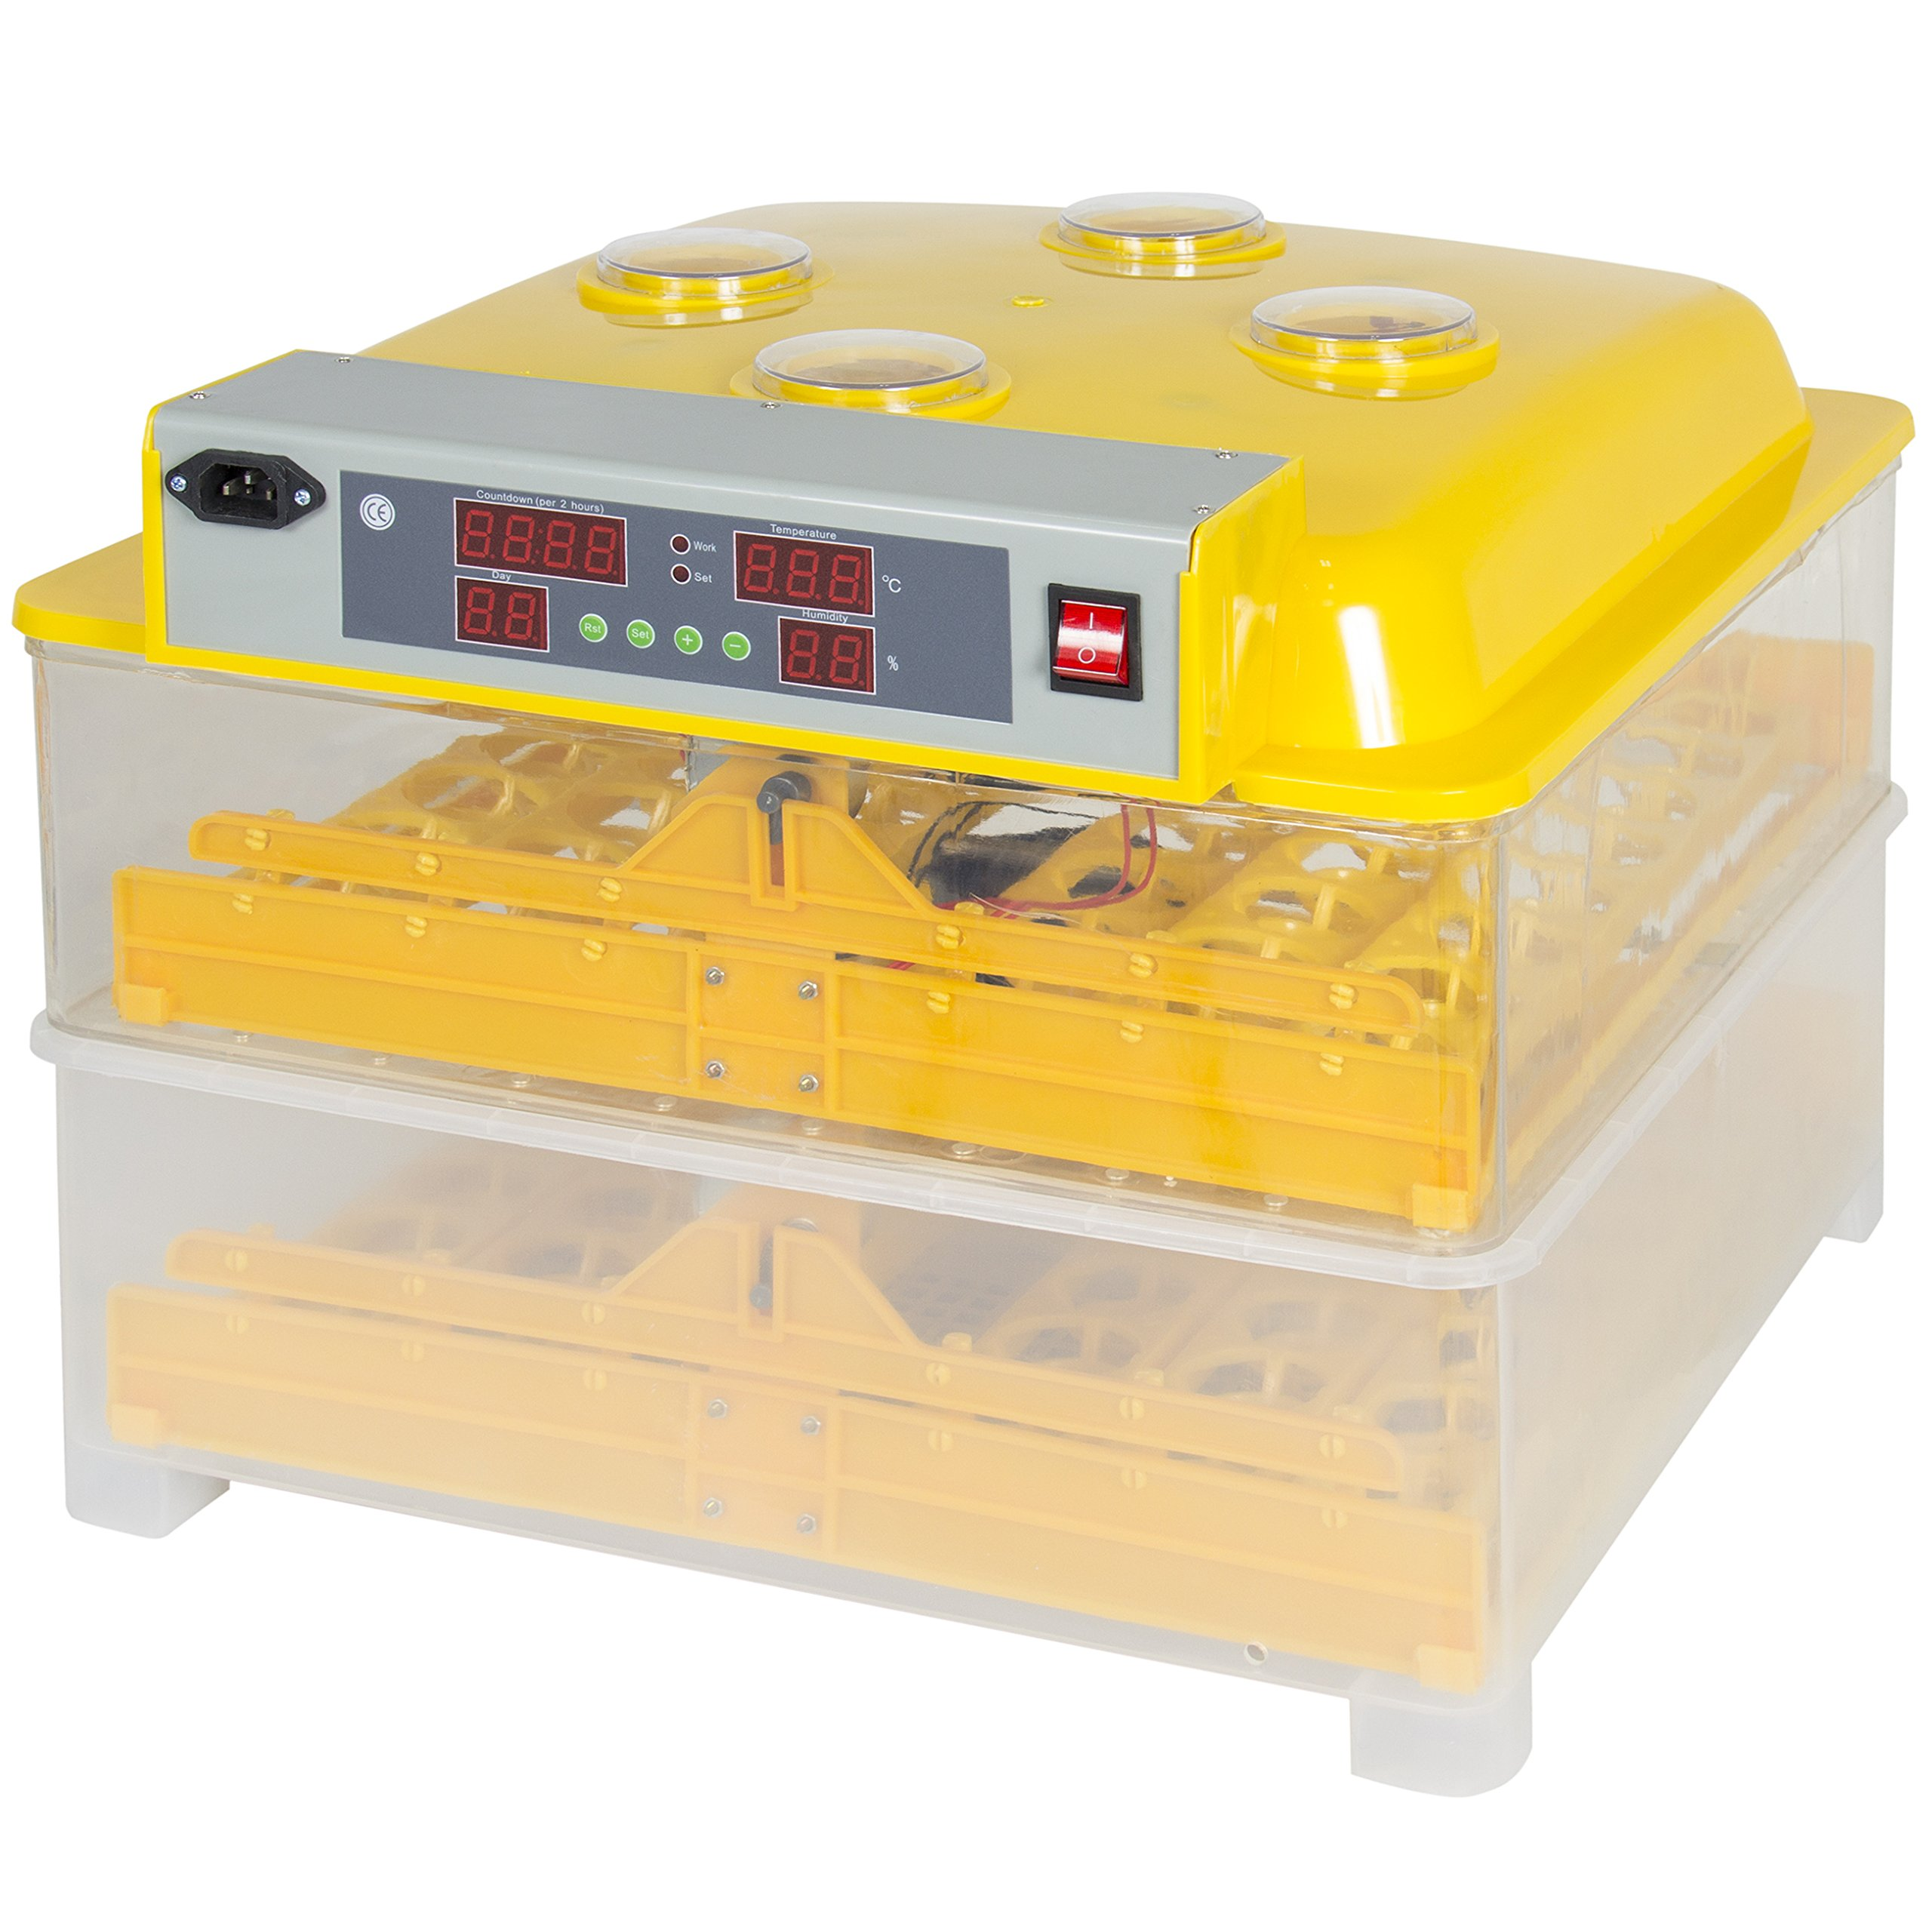 Best Choice Products 96 Digital Clear Egg Incubator Hatcher Automatic Egg Turning Temperature Control